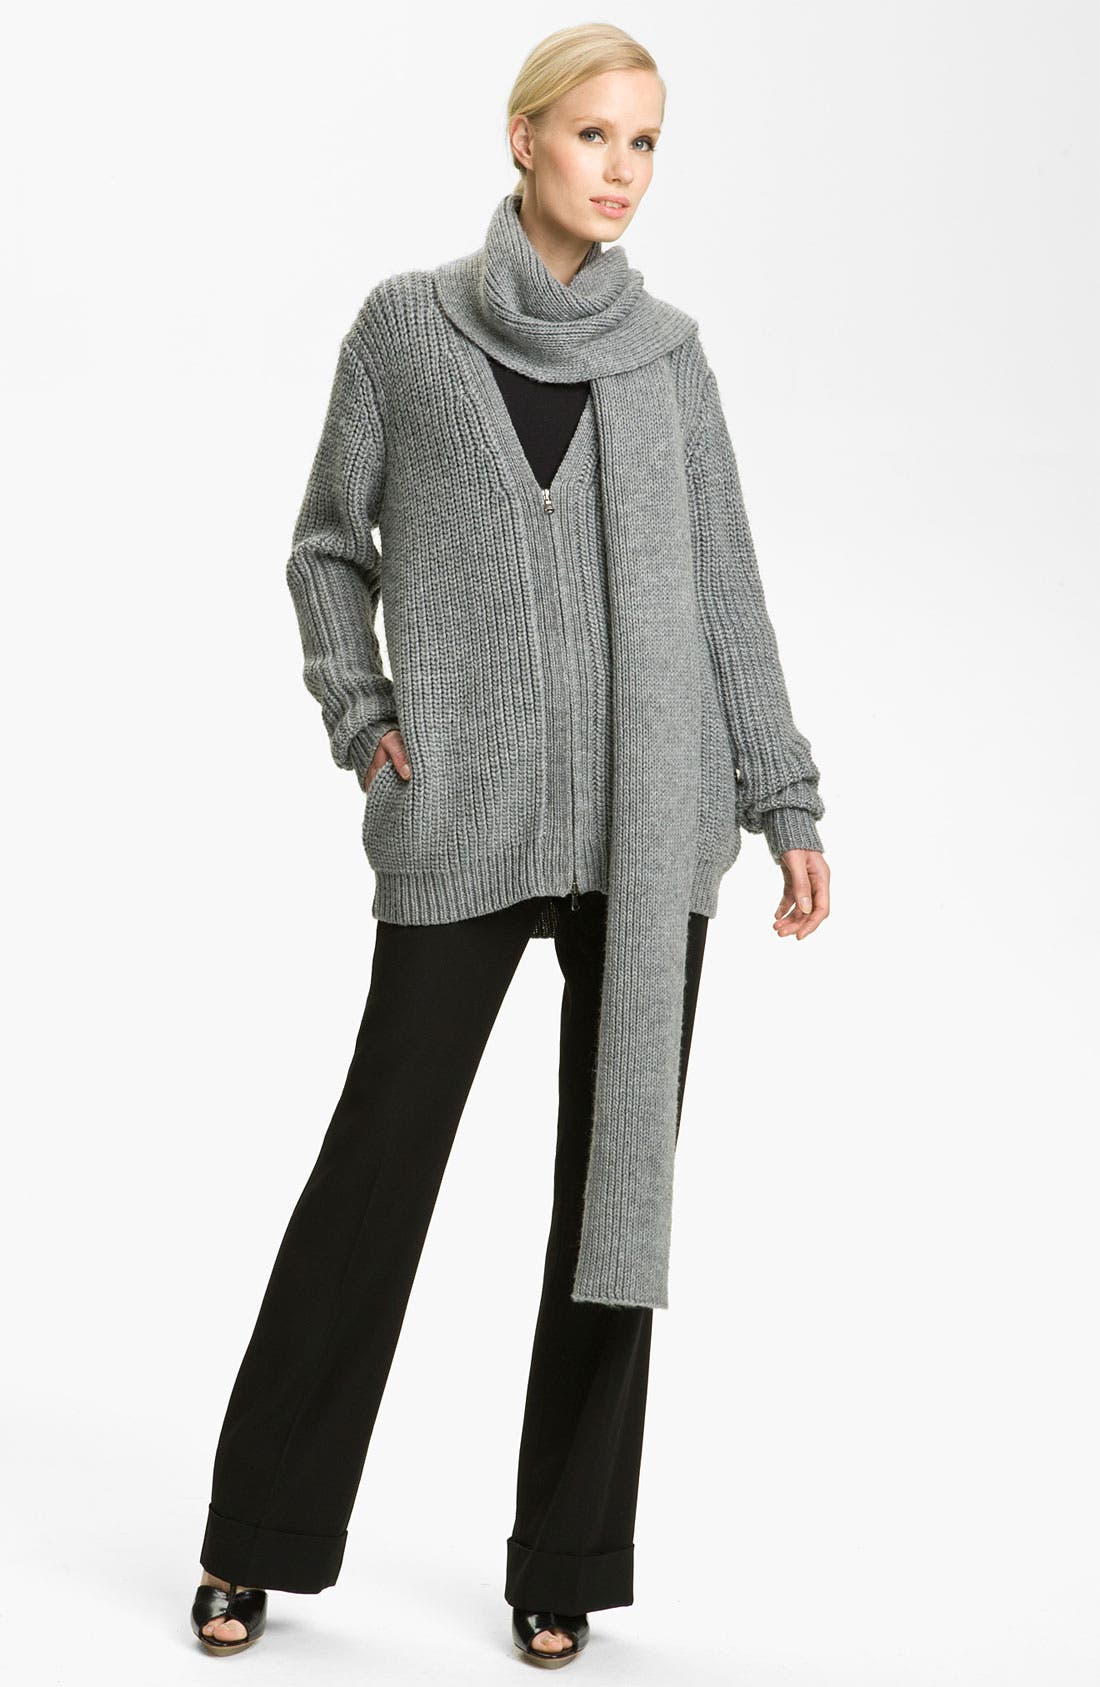 Alternate Image 1 Selected - 3.1 Phillip Lim Scarf Neck Boyfriend Cardigan